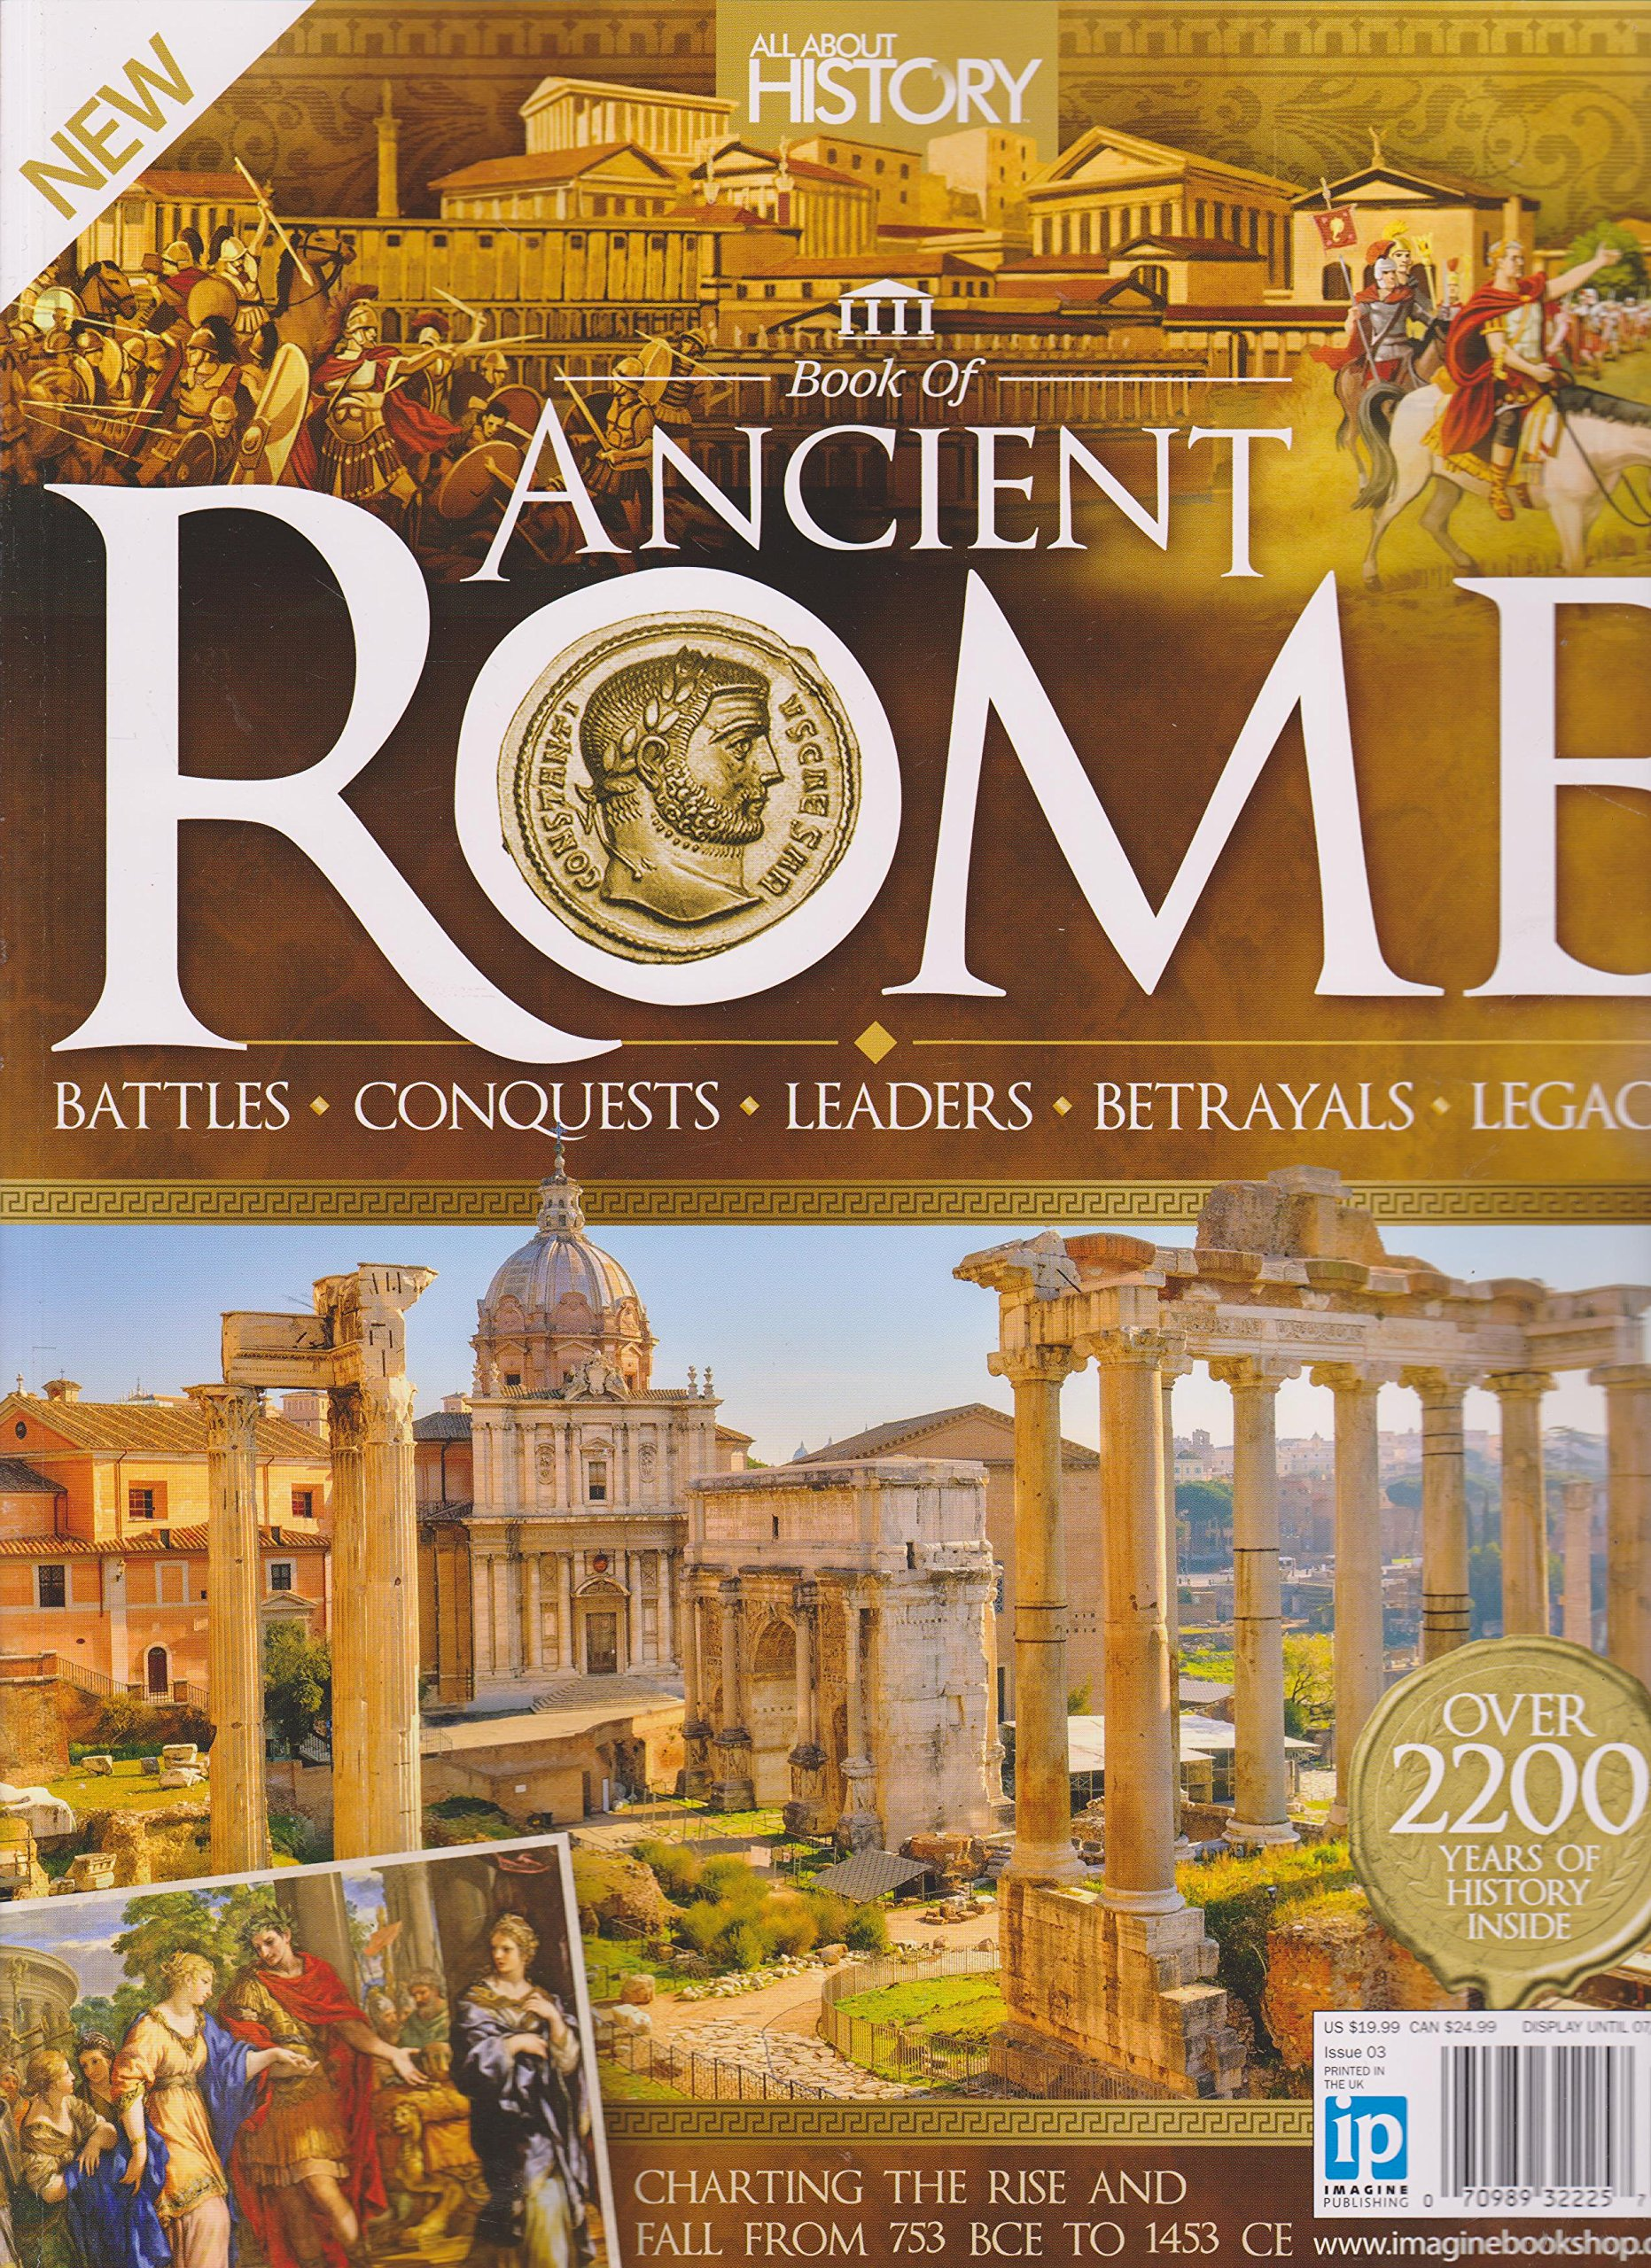 All About History Book of Ancient Rome Issue 3 pdf